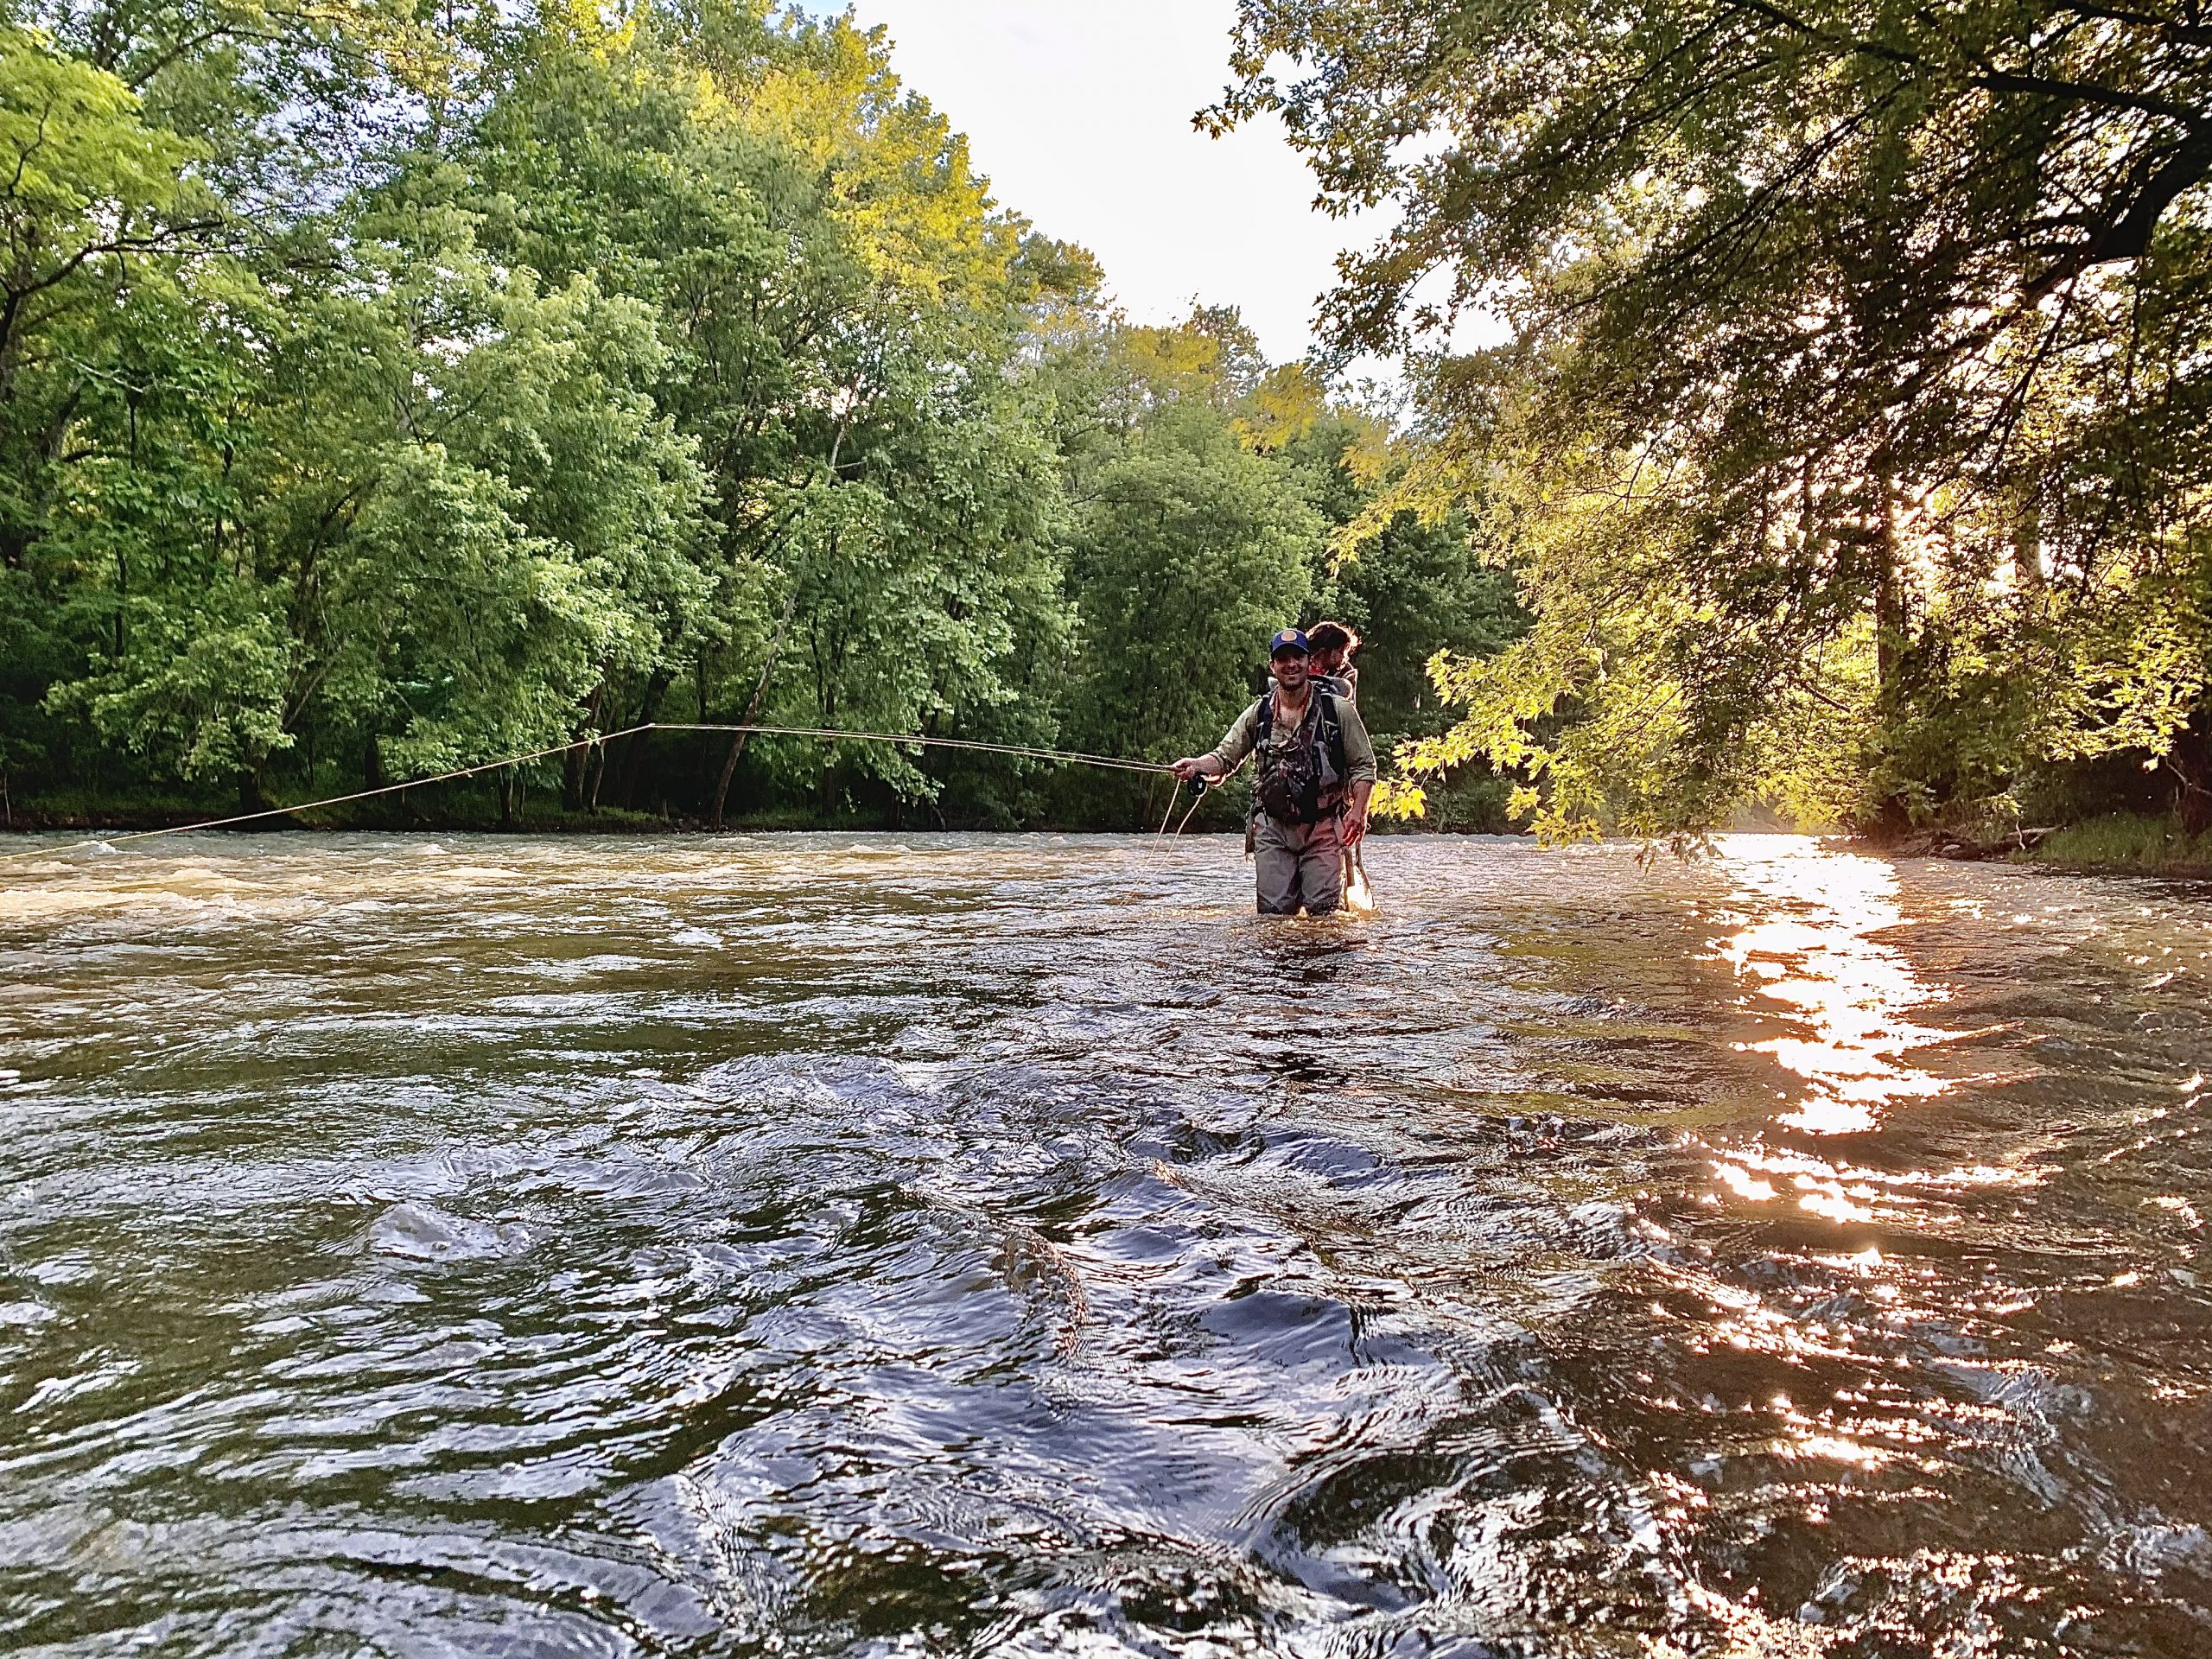 A man stands knee-deep in a river, flyfishing with the sun overhead and his daughter on his back..